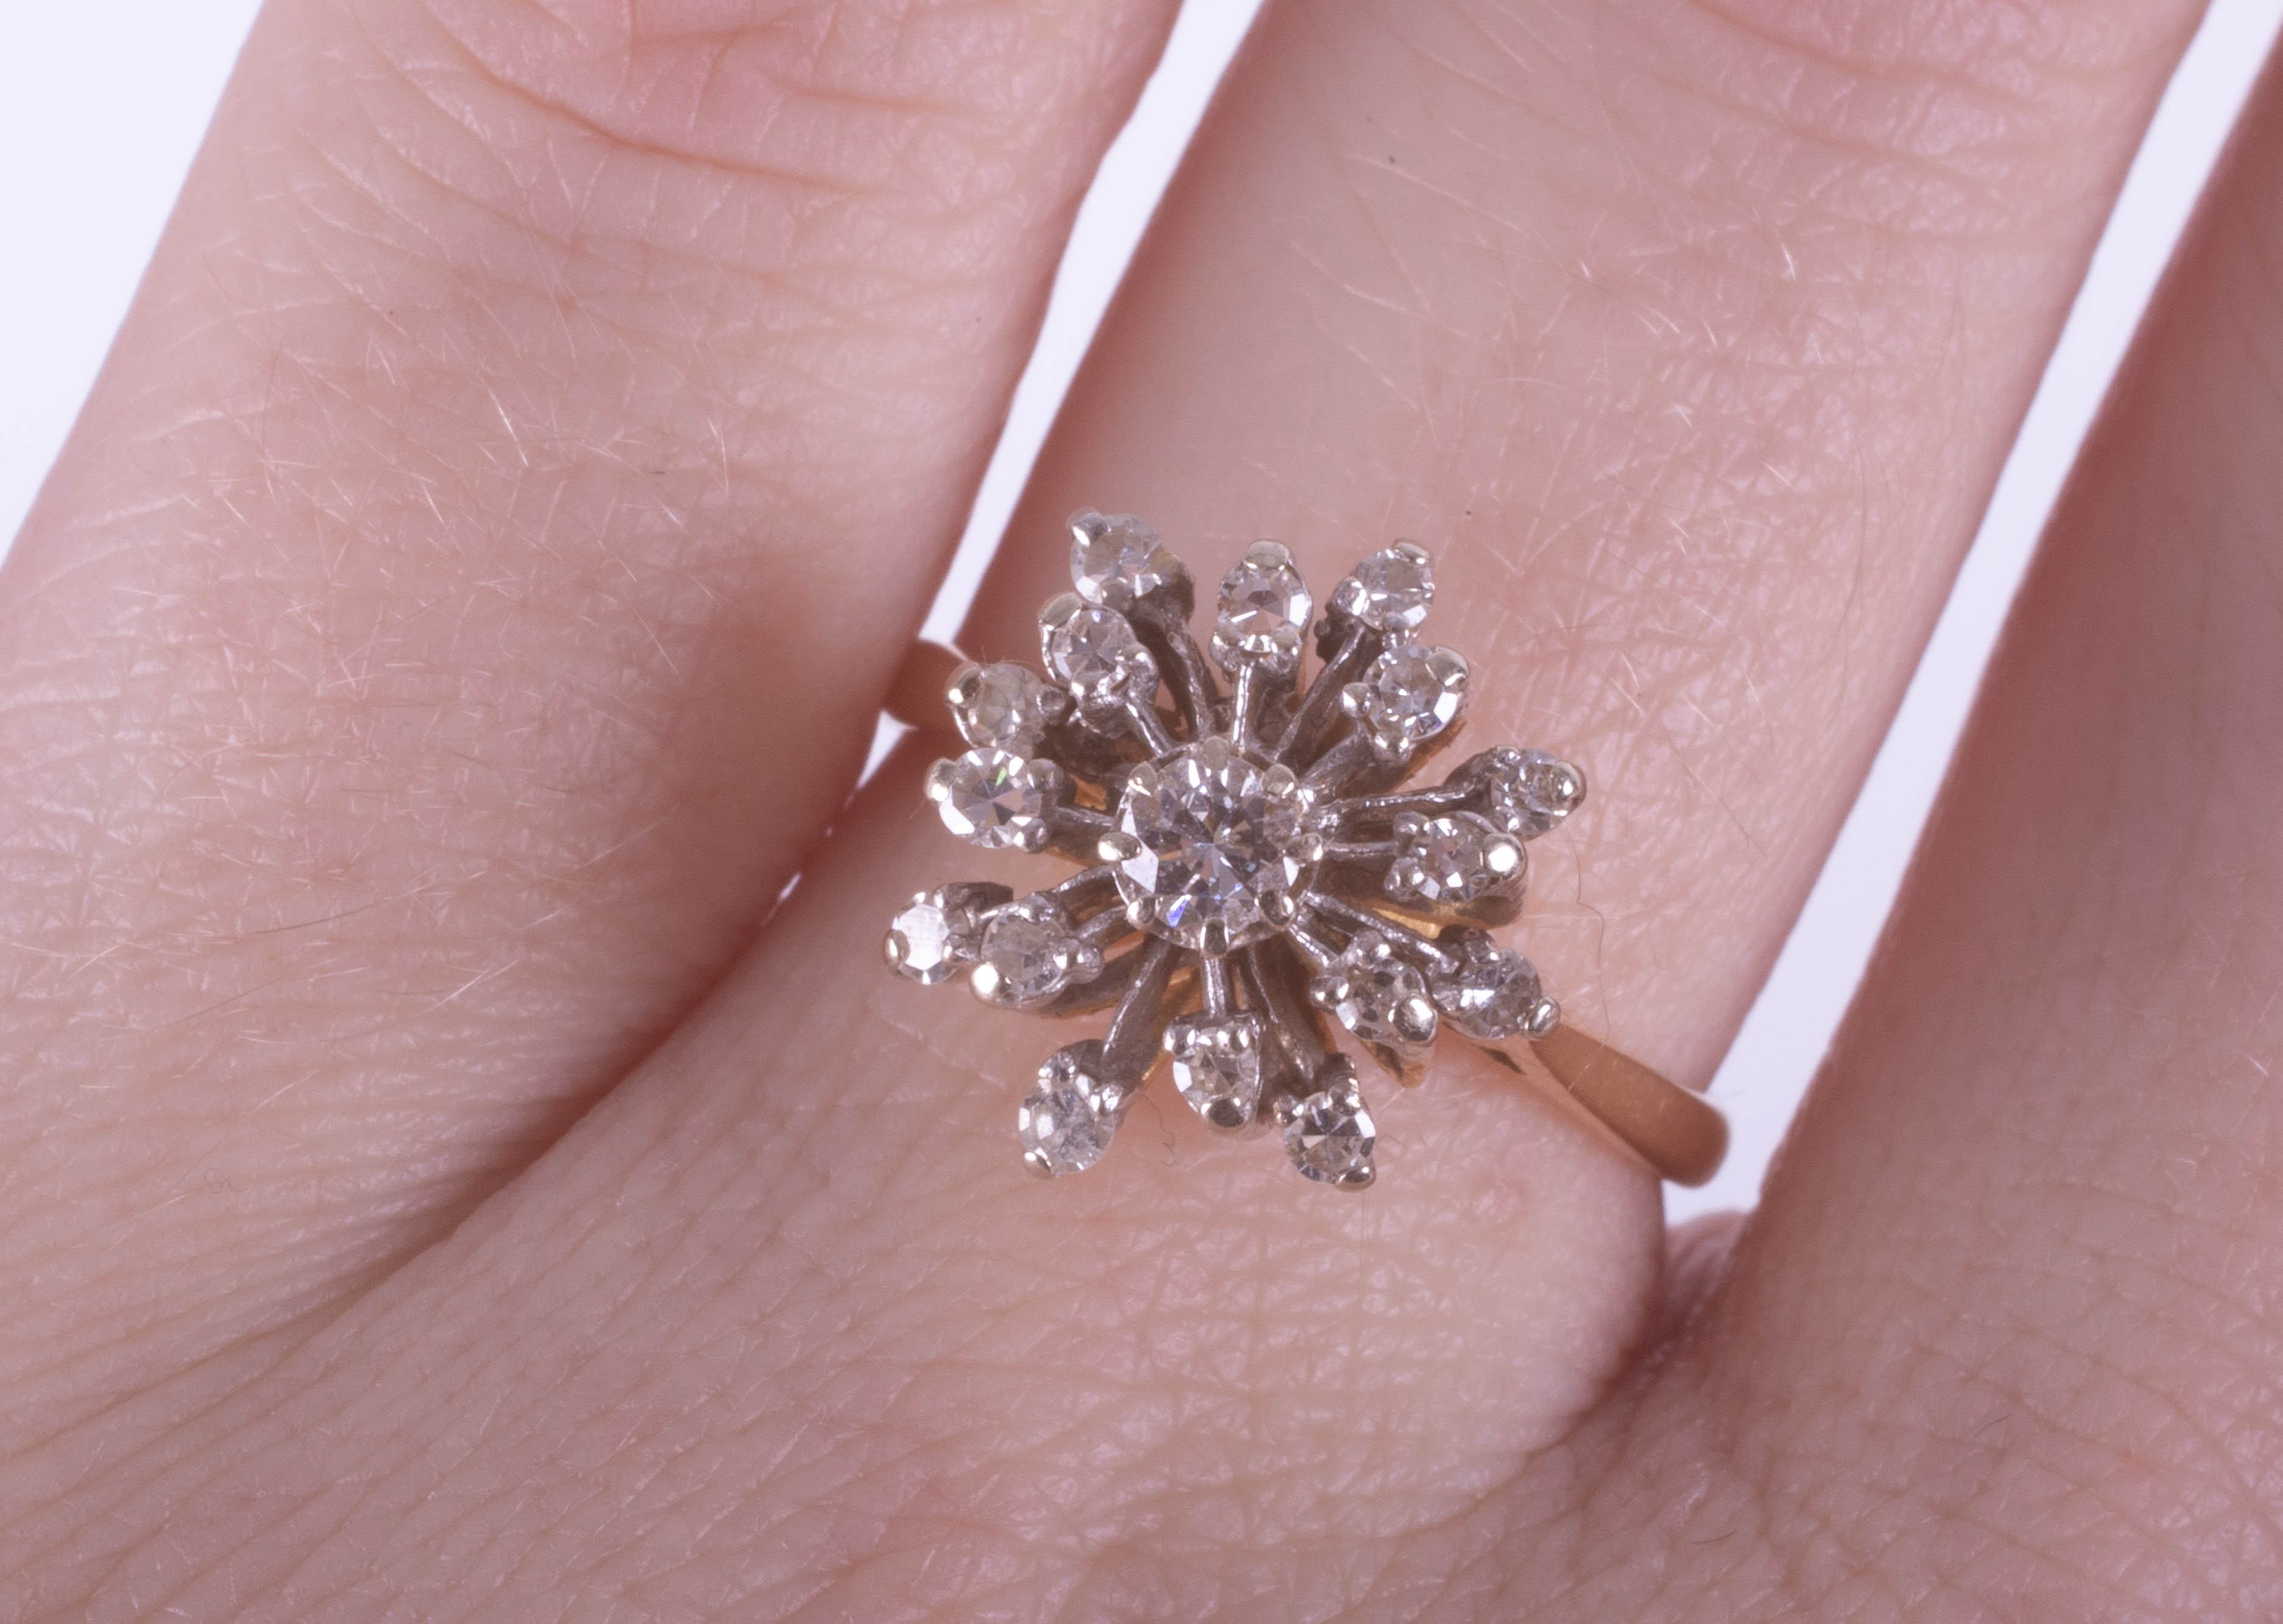 An 18ct diamond cluster ring set in yellow gold, size N. - Image 2 of 3